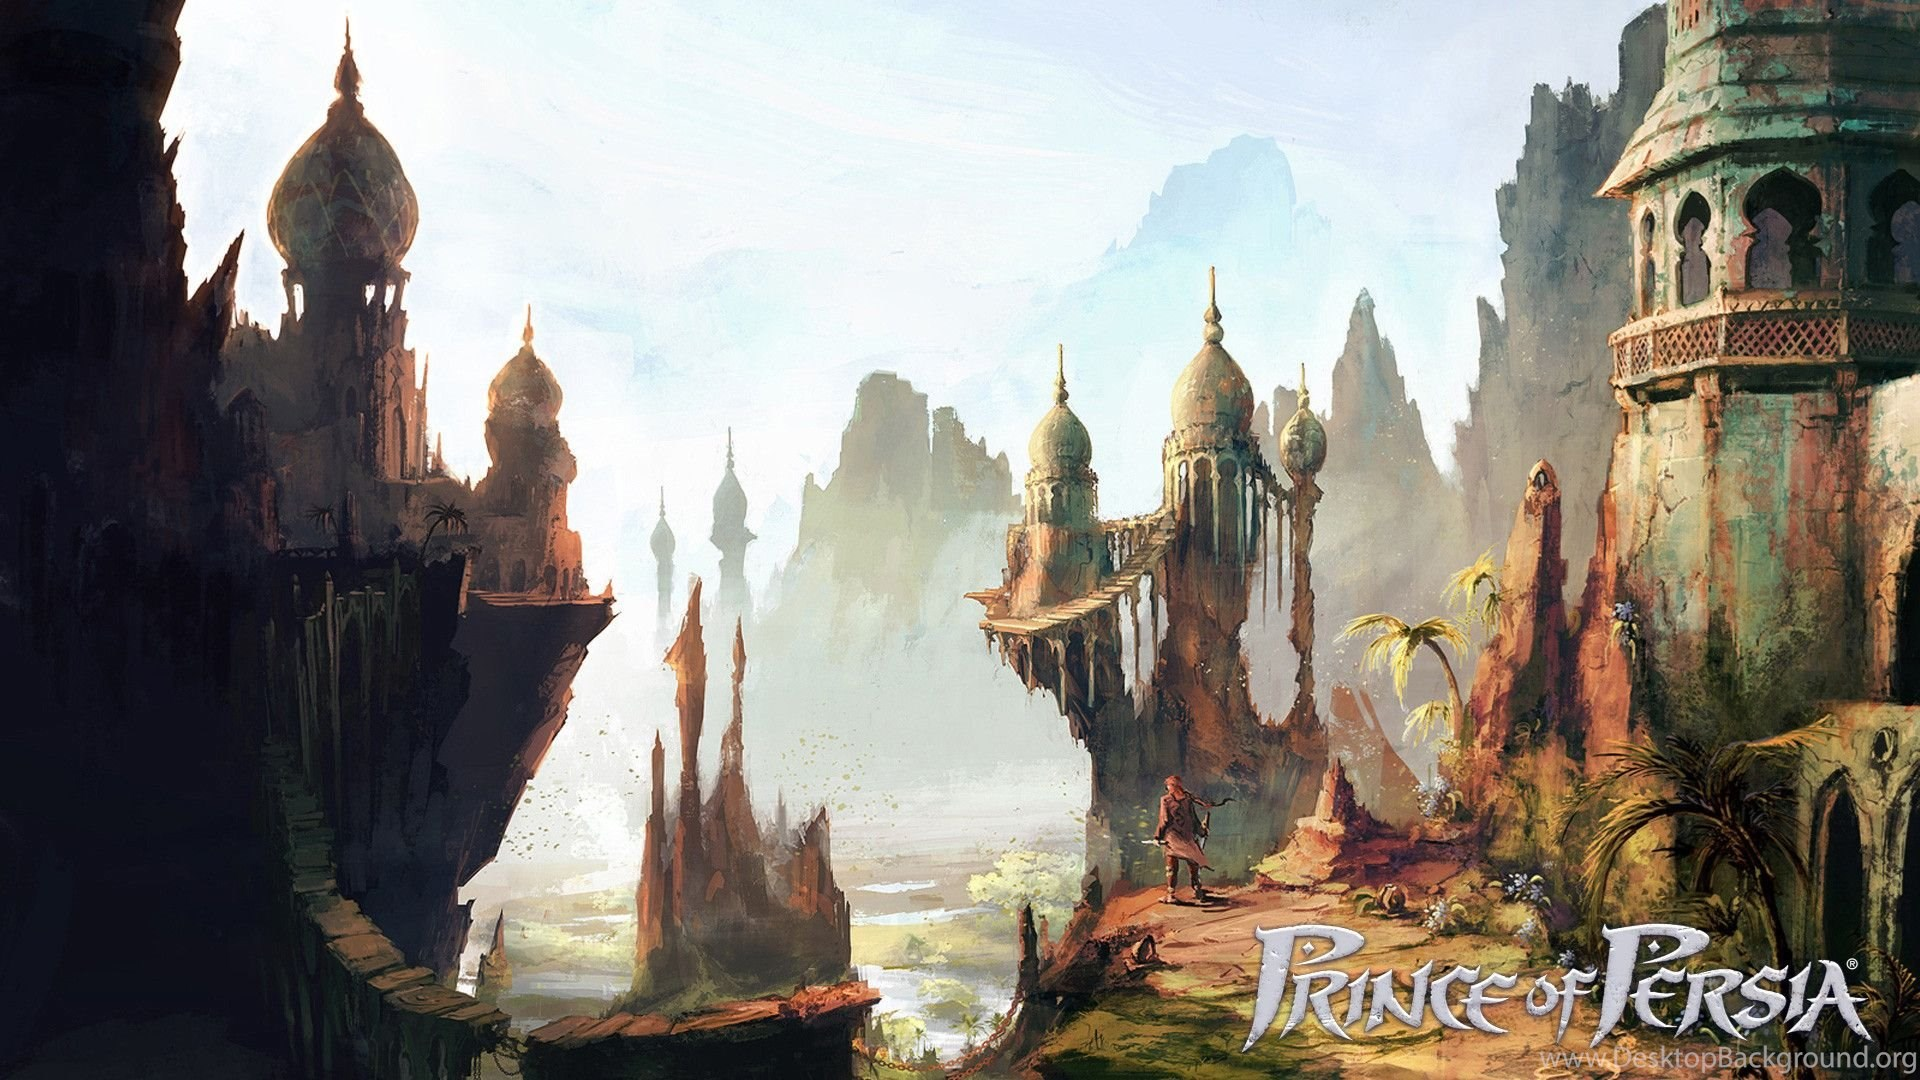 Prince Of Persia 2008 Wallpapers Wallpapers Cave Desktop Background